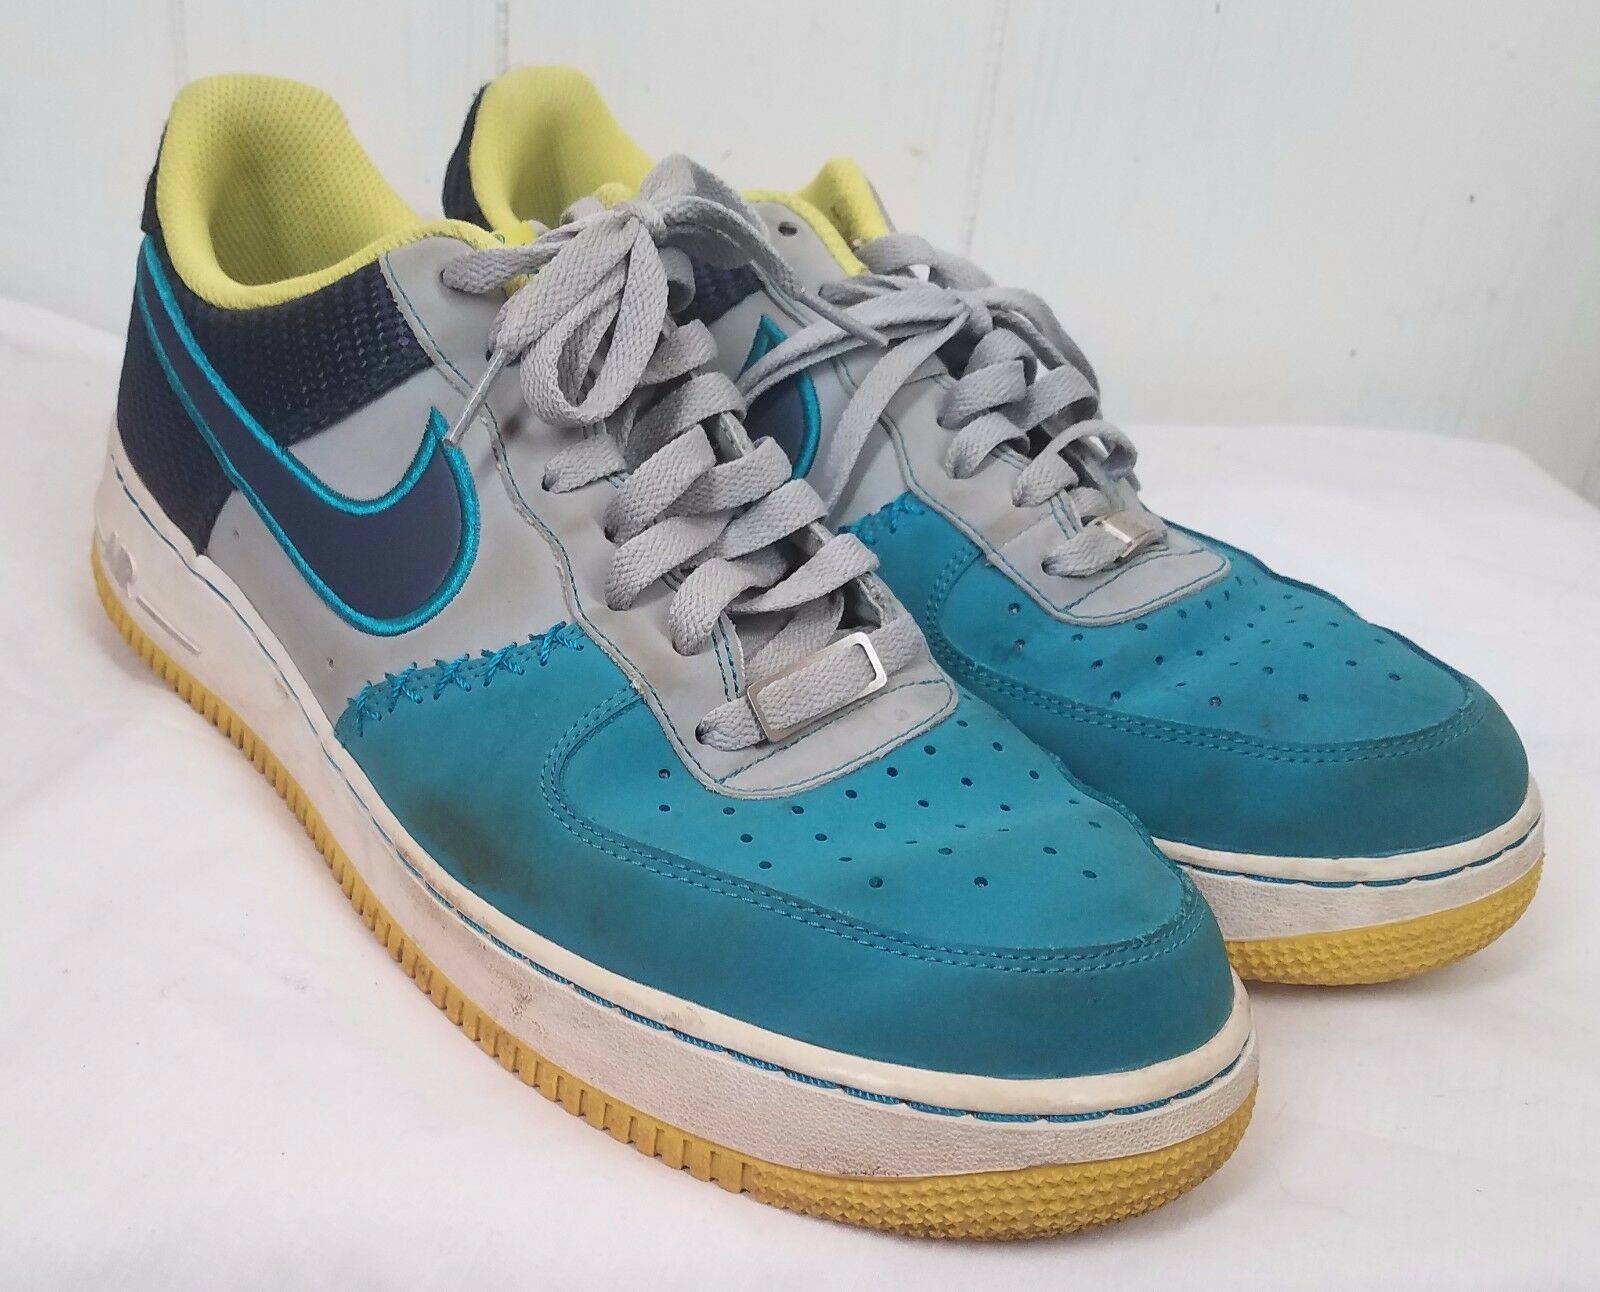 Nike Air Force de 1 lobo gris mediados de Force marina tropical Teal comodo gran descuento 008f75